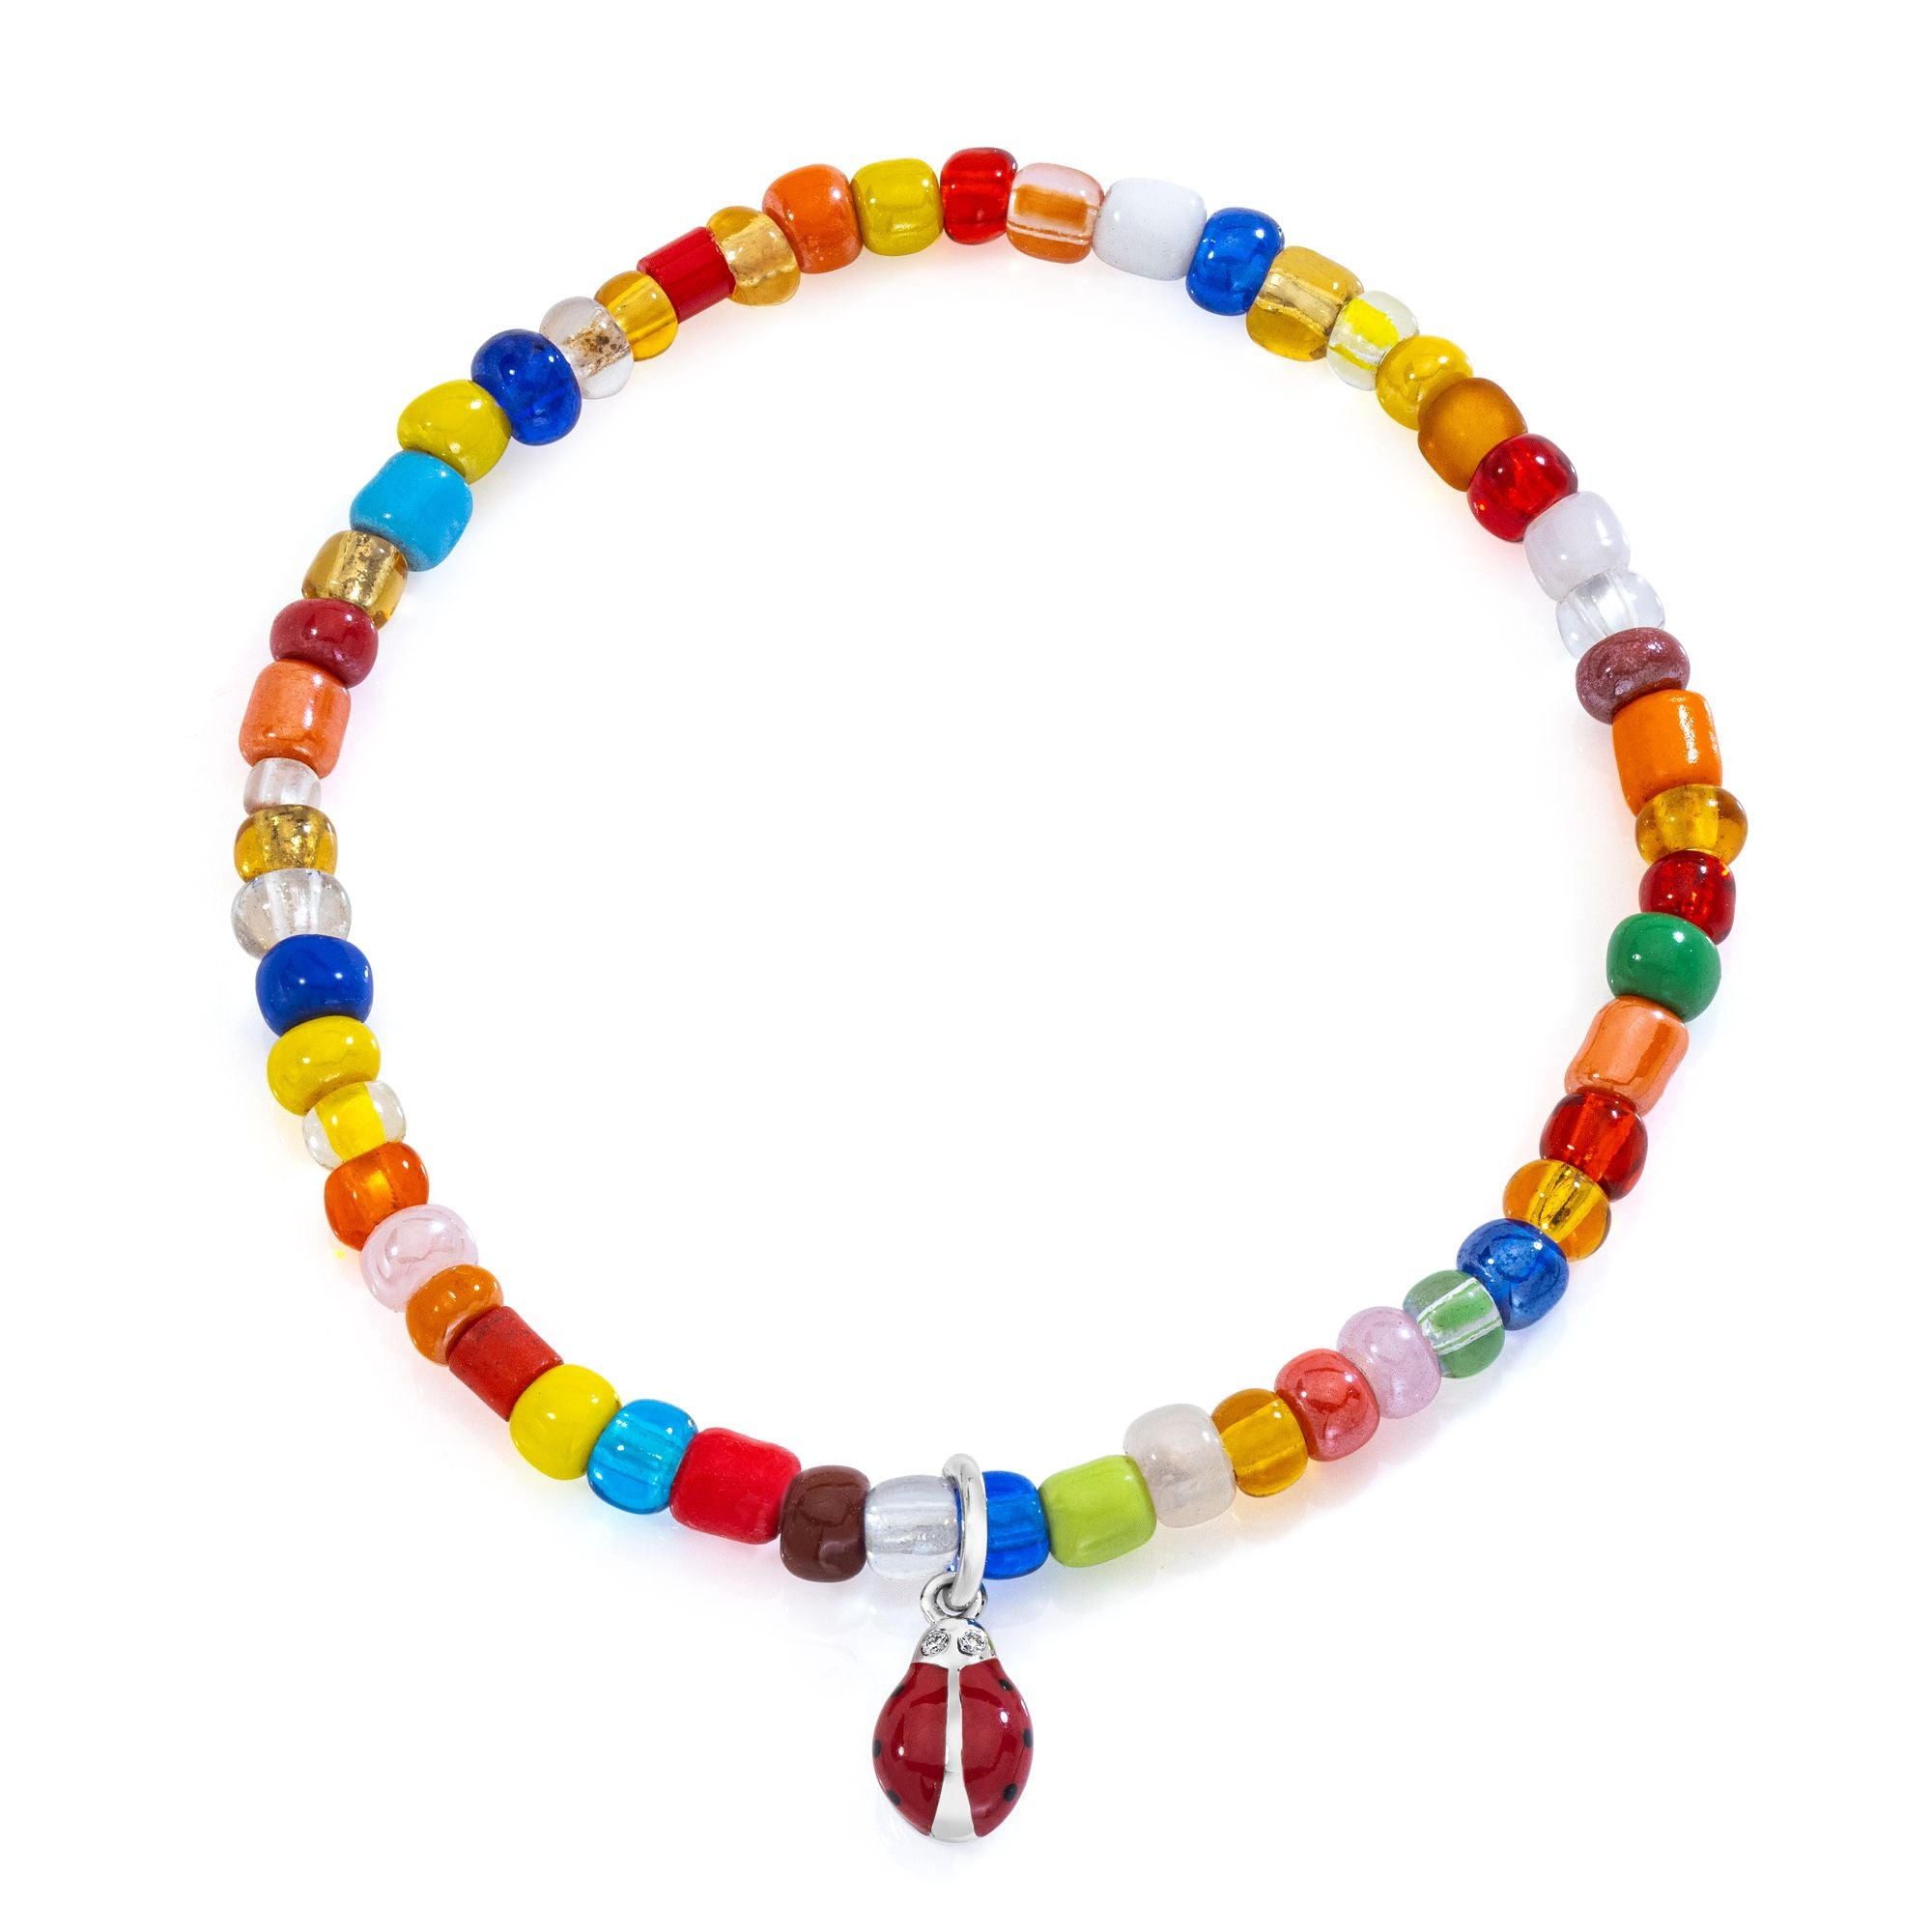 Red Ladybug on colorful beaded bracelet